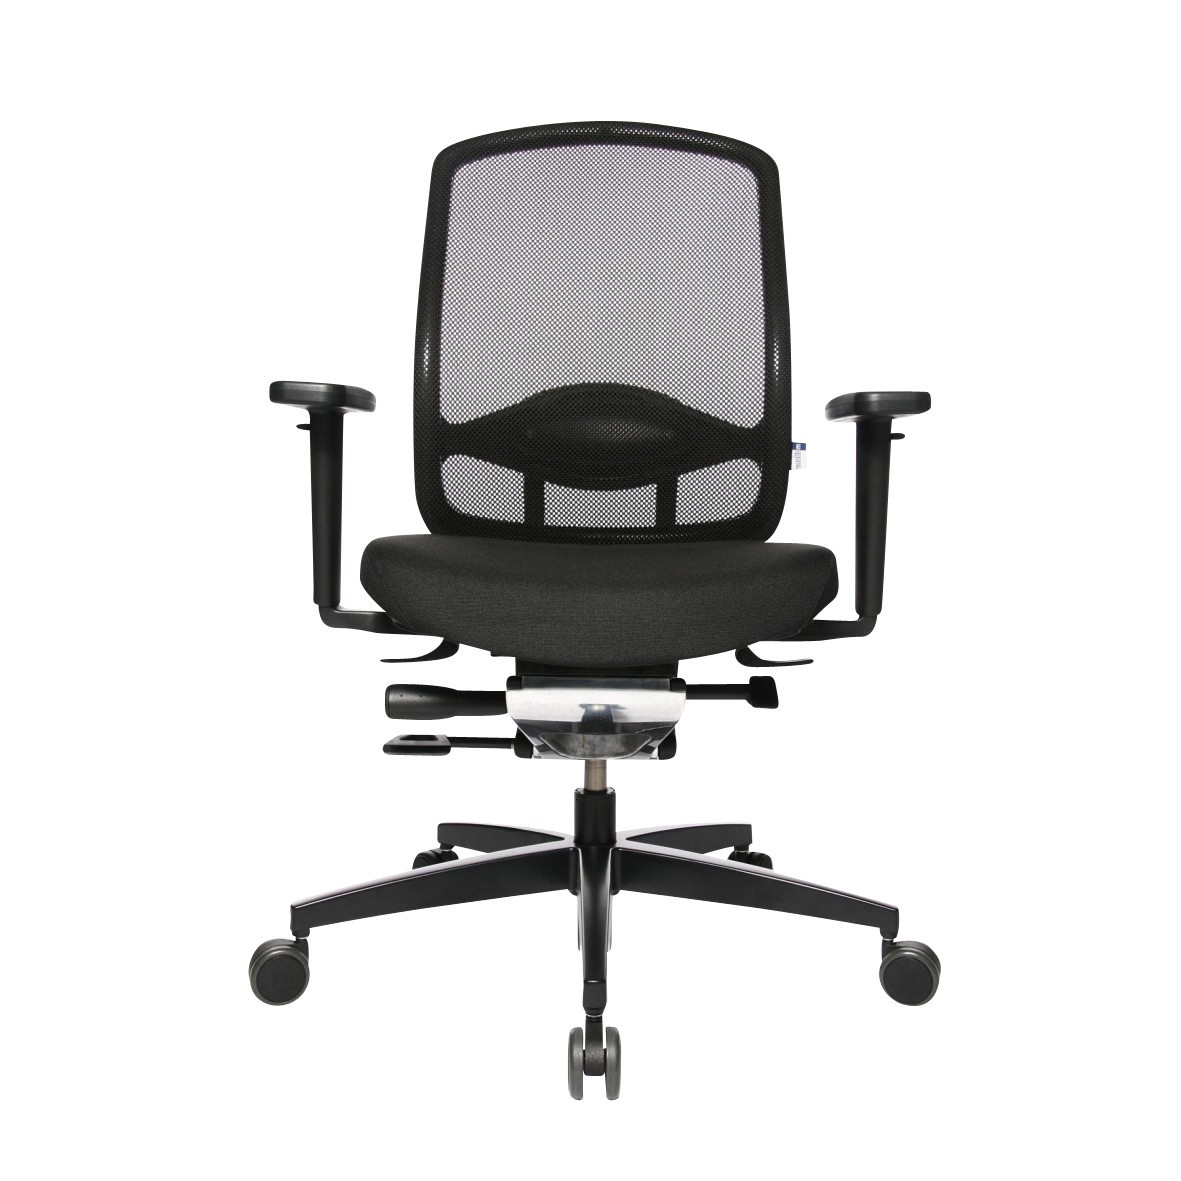 Wagner Alumedic 5 Office Chair Ambientedirect